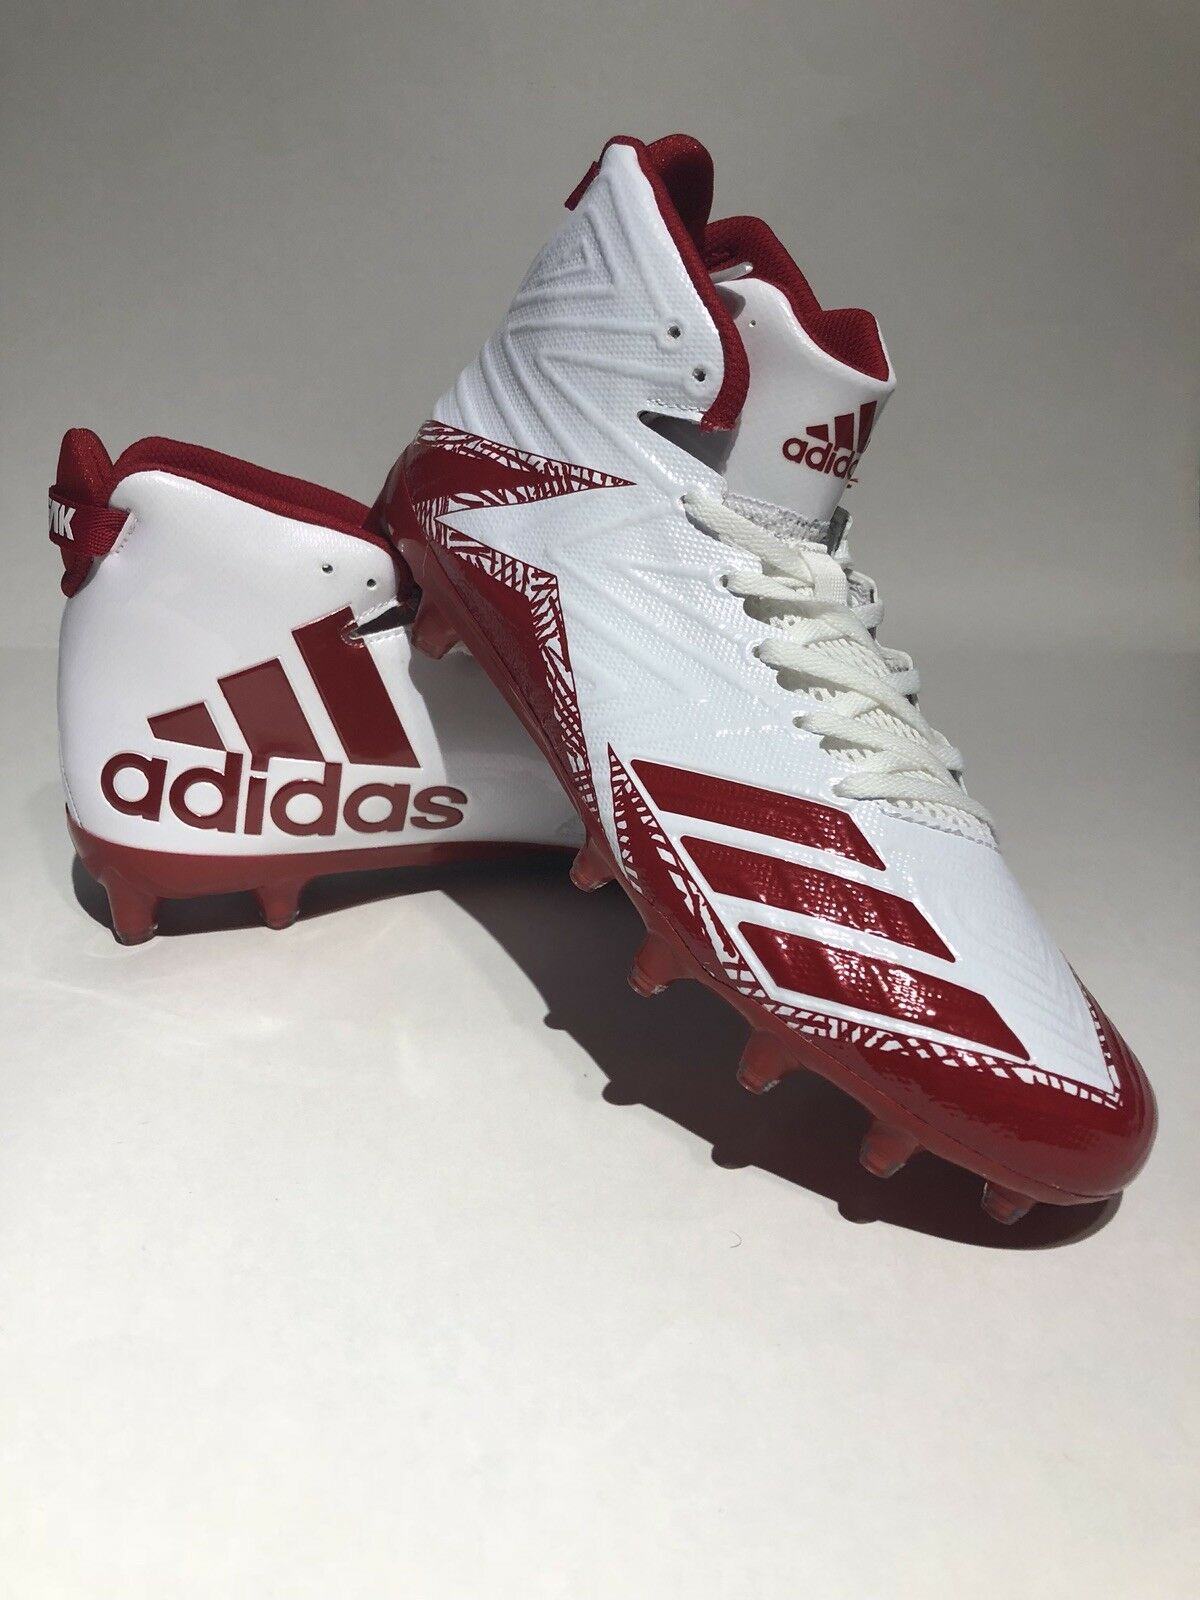 Adidas Men's Freak X Carbon Mid Size 10.5 Football Cleats White Power Red